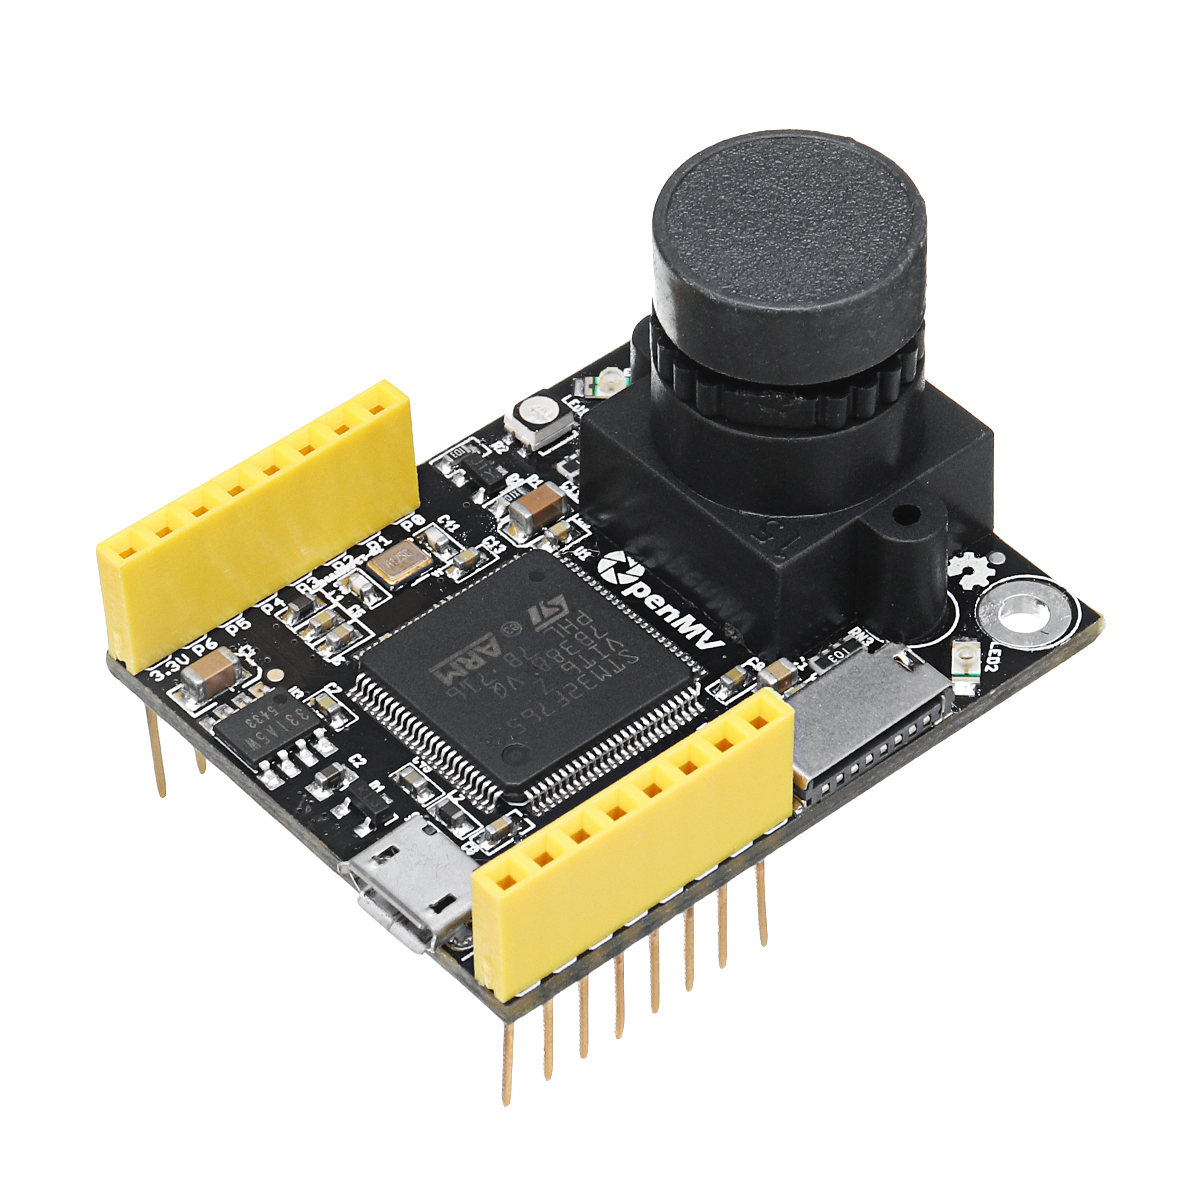 NEW 2018 OpenMV3 Cam M7 Smart Camera Image Processing Color Recognition Sensor Visual Inspection Line Camera Board-in Integrated Circuits from Electronic Components & Supplies